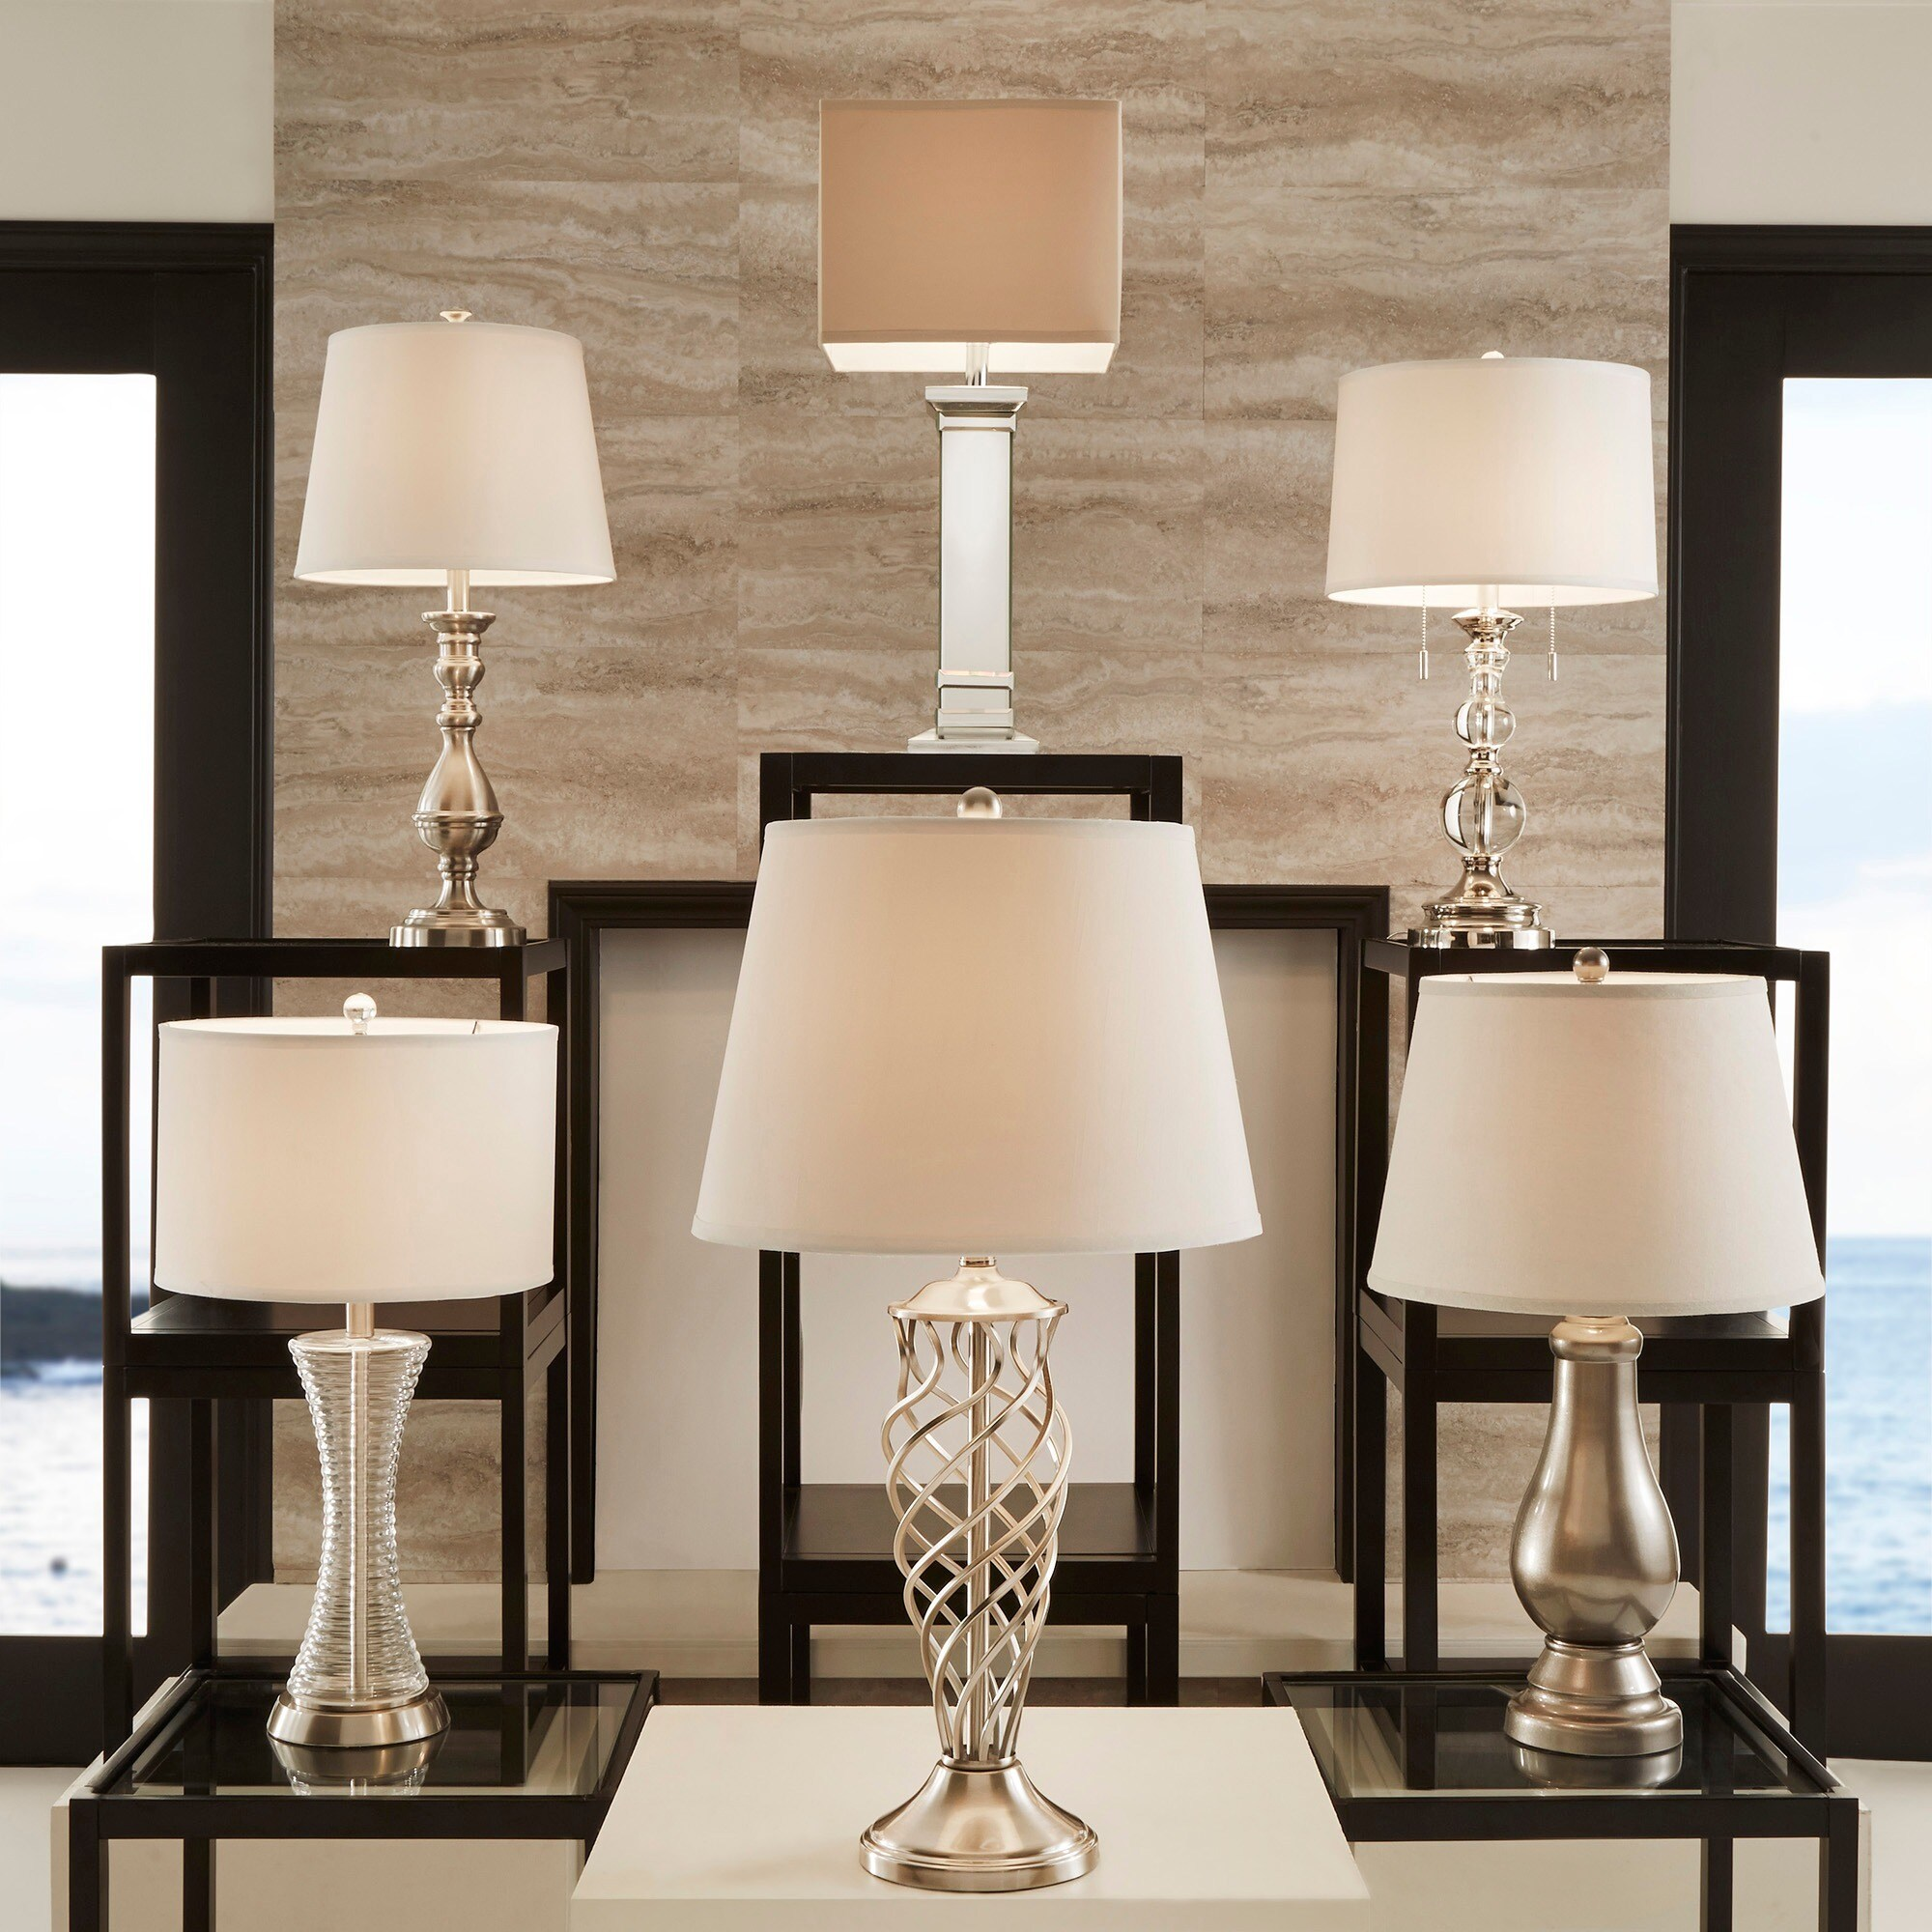 Quinn Crystal Mercury Base 2-light Accent Table Lamp by iNSPIRE Q Bold -  Free Shipping Today - Overstock.com - 15769182